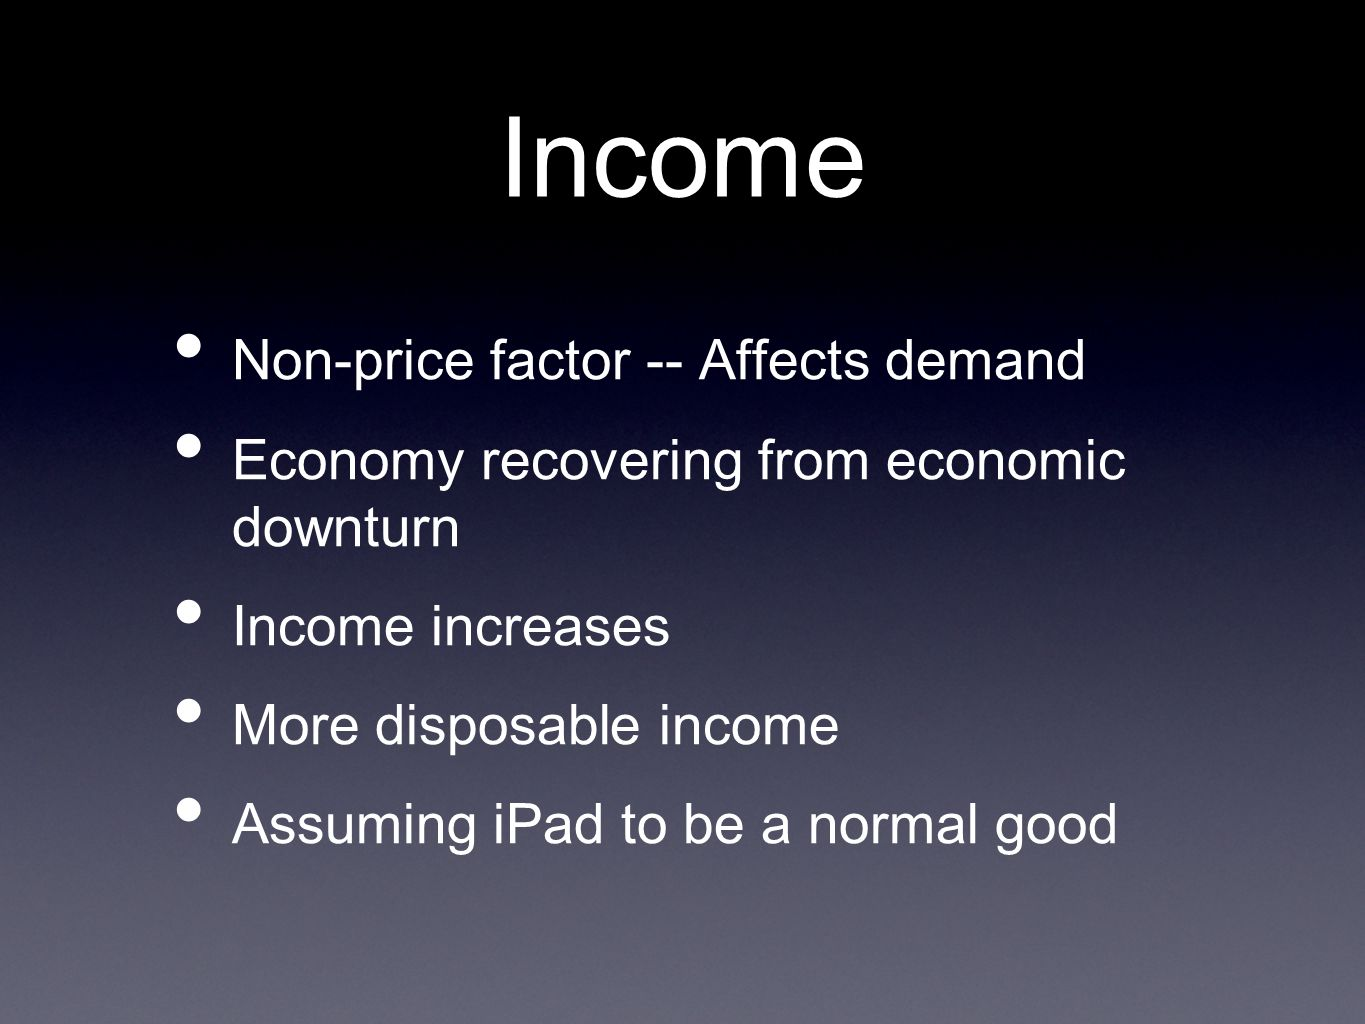 Income Non-price factor -- Affects demand Economy recovering from economic downturn Income increases More disposable income Assuming iPad to be a norm